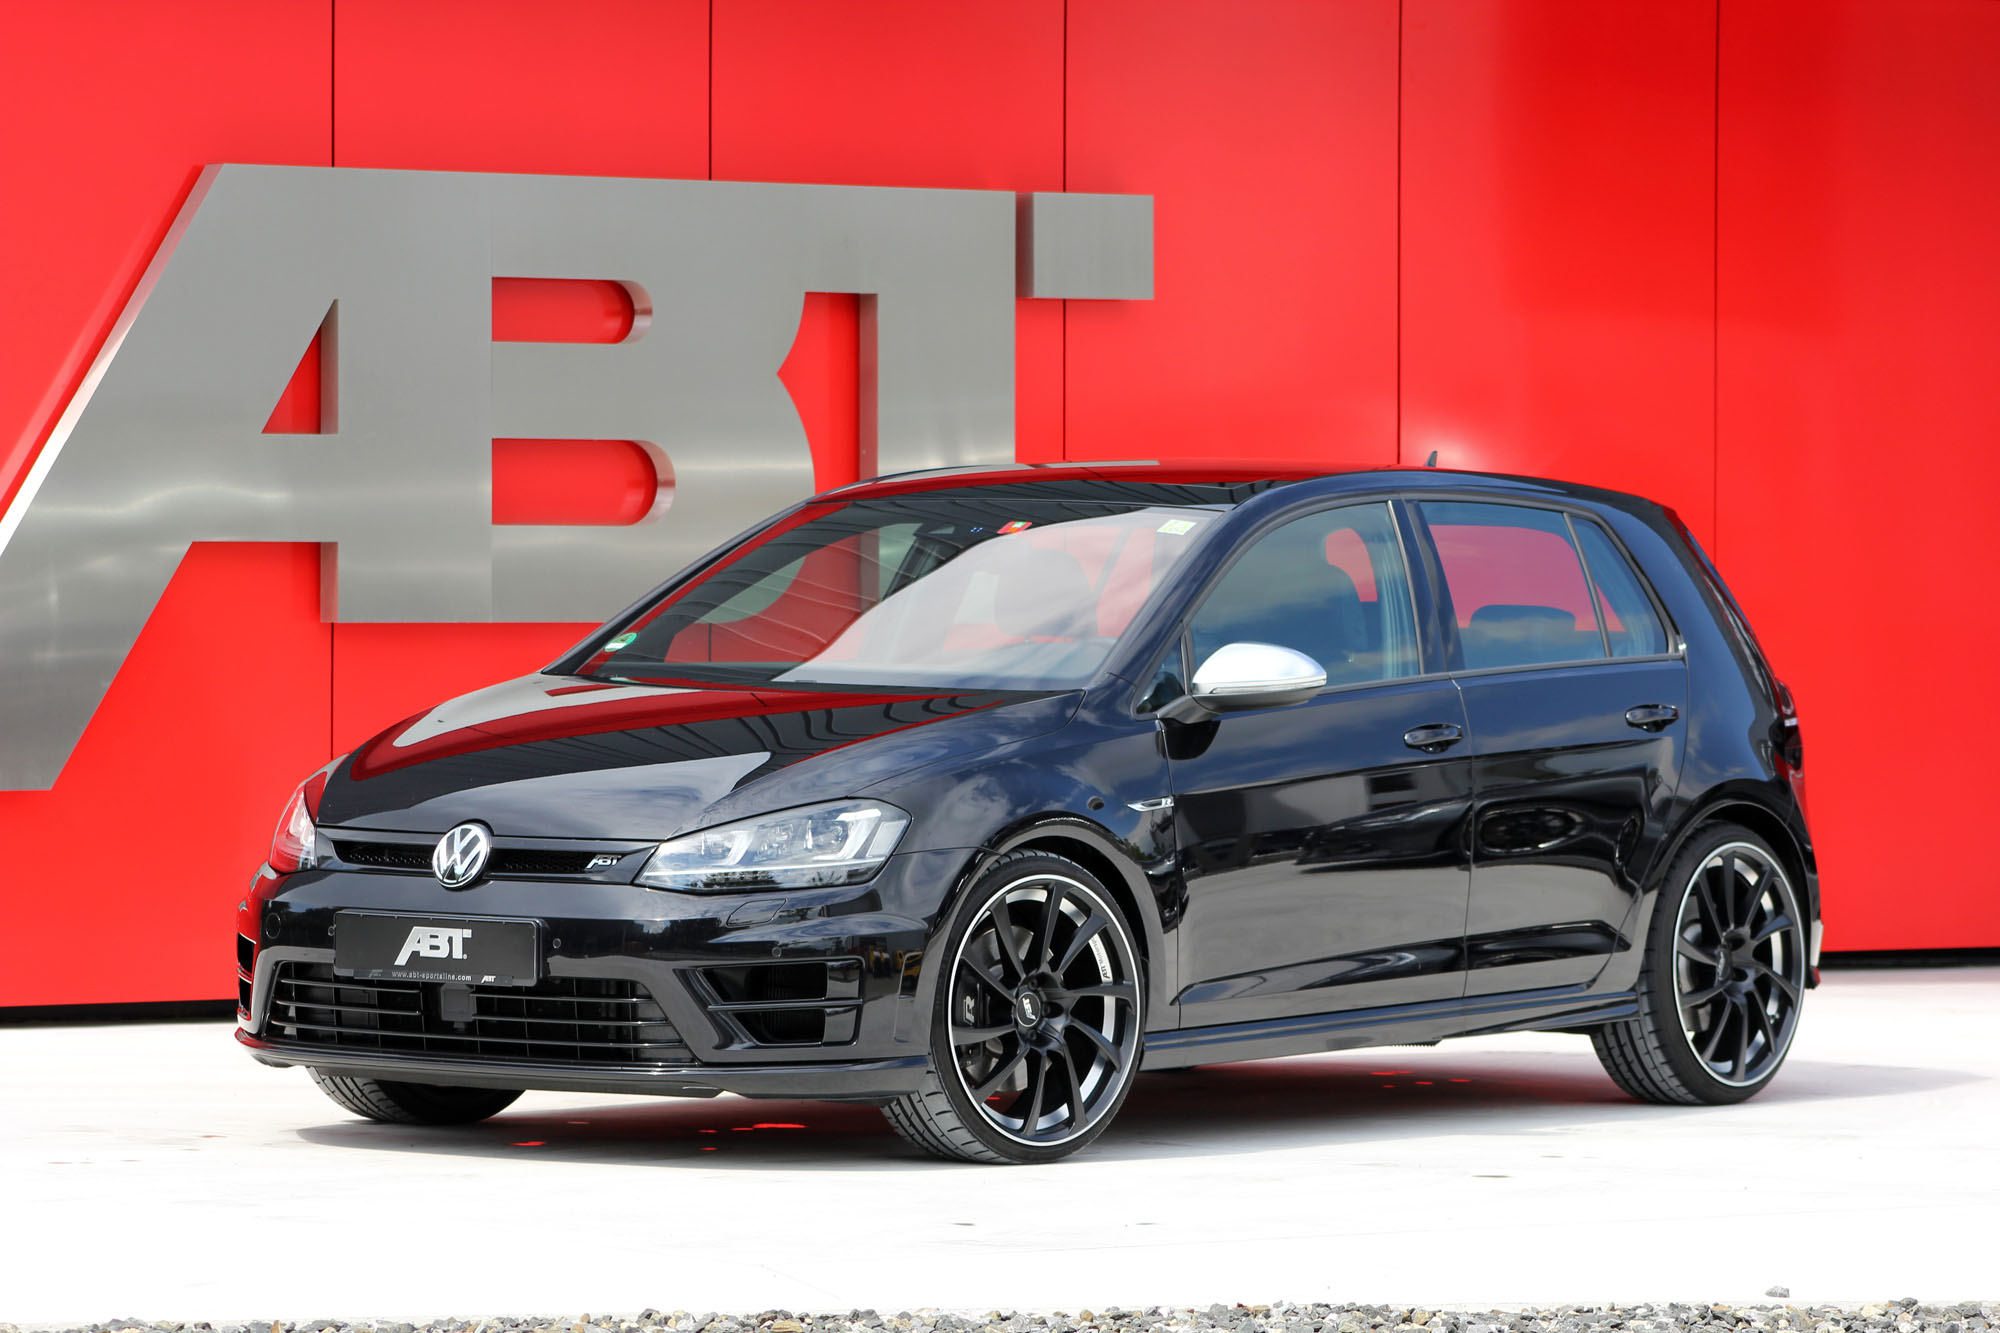 vw-golf-7-r-abt-golf-r-400-01